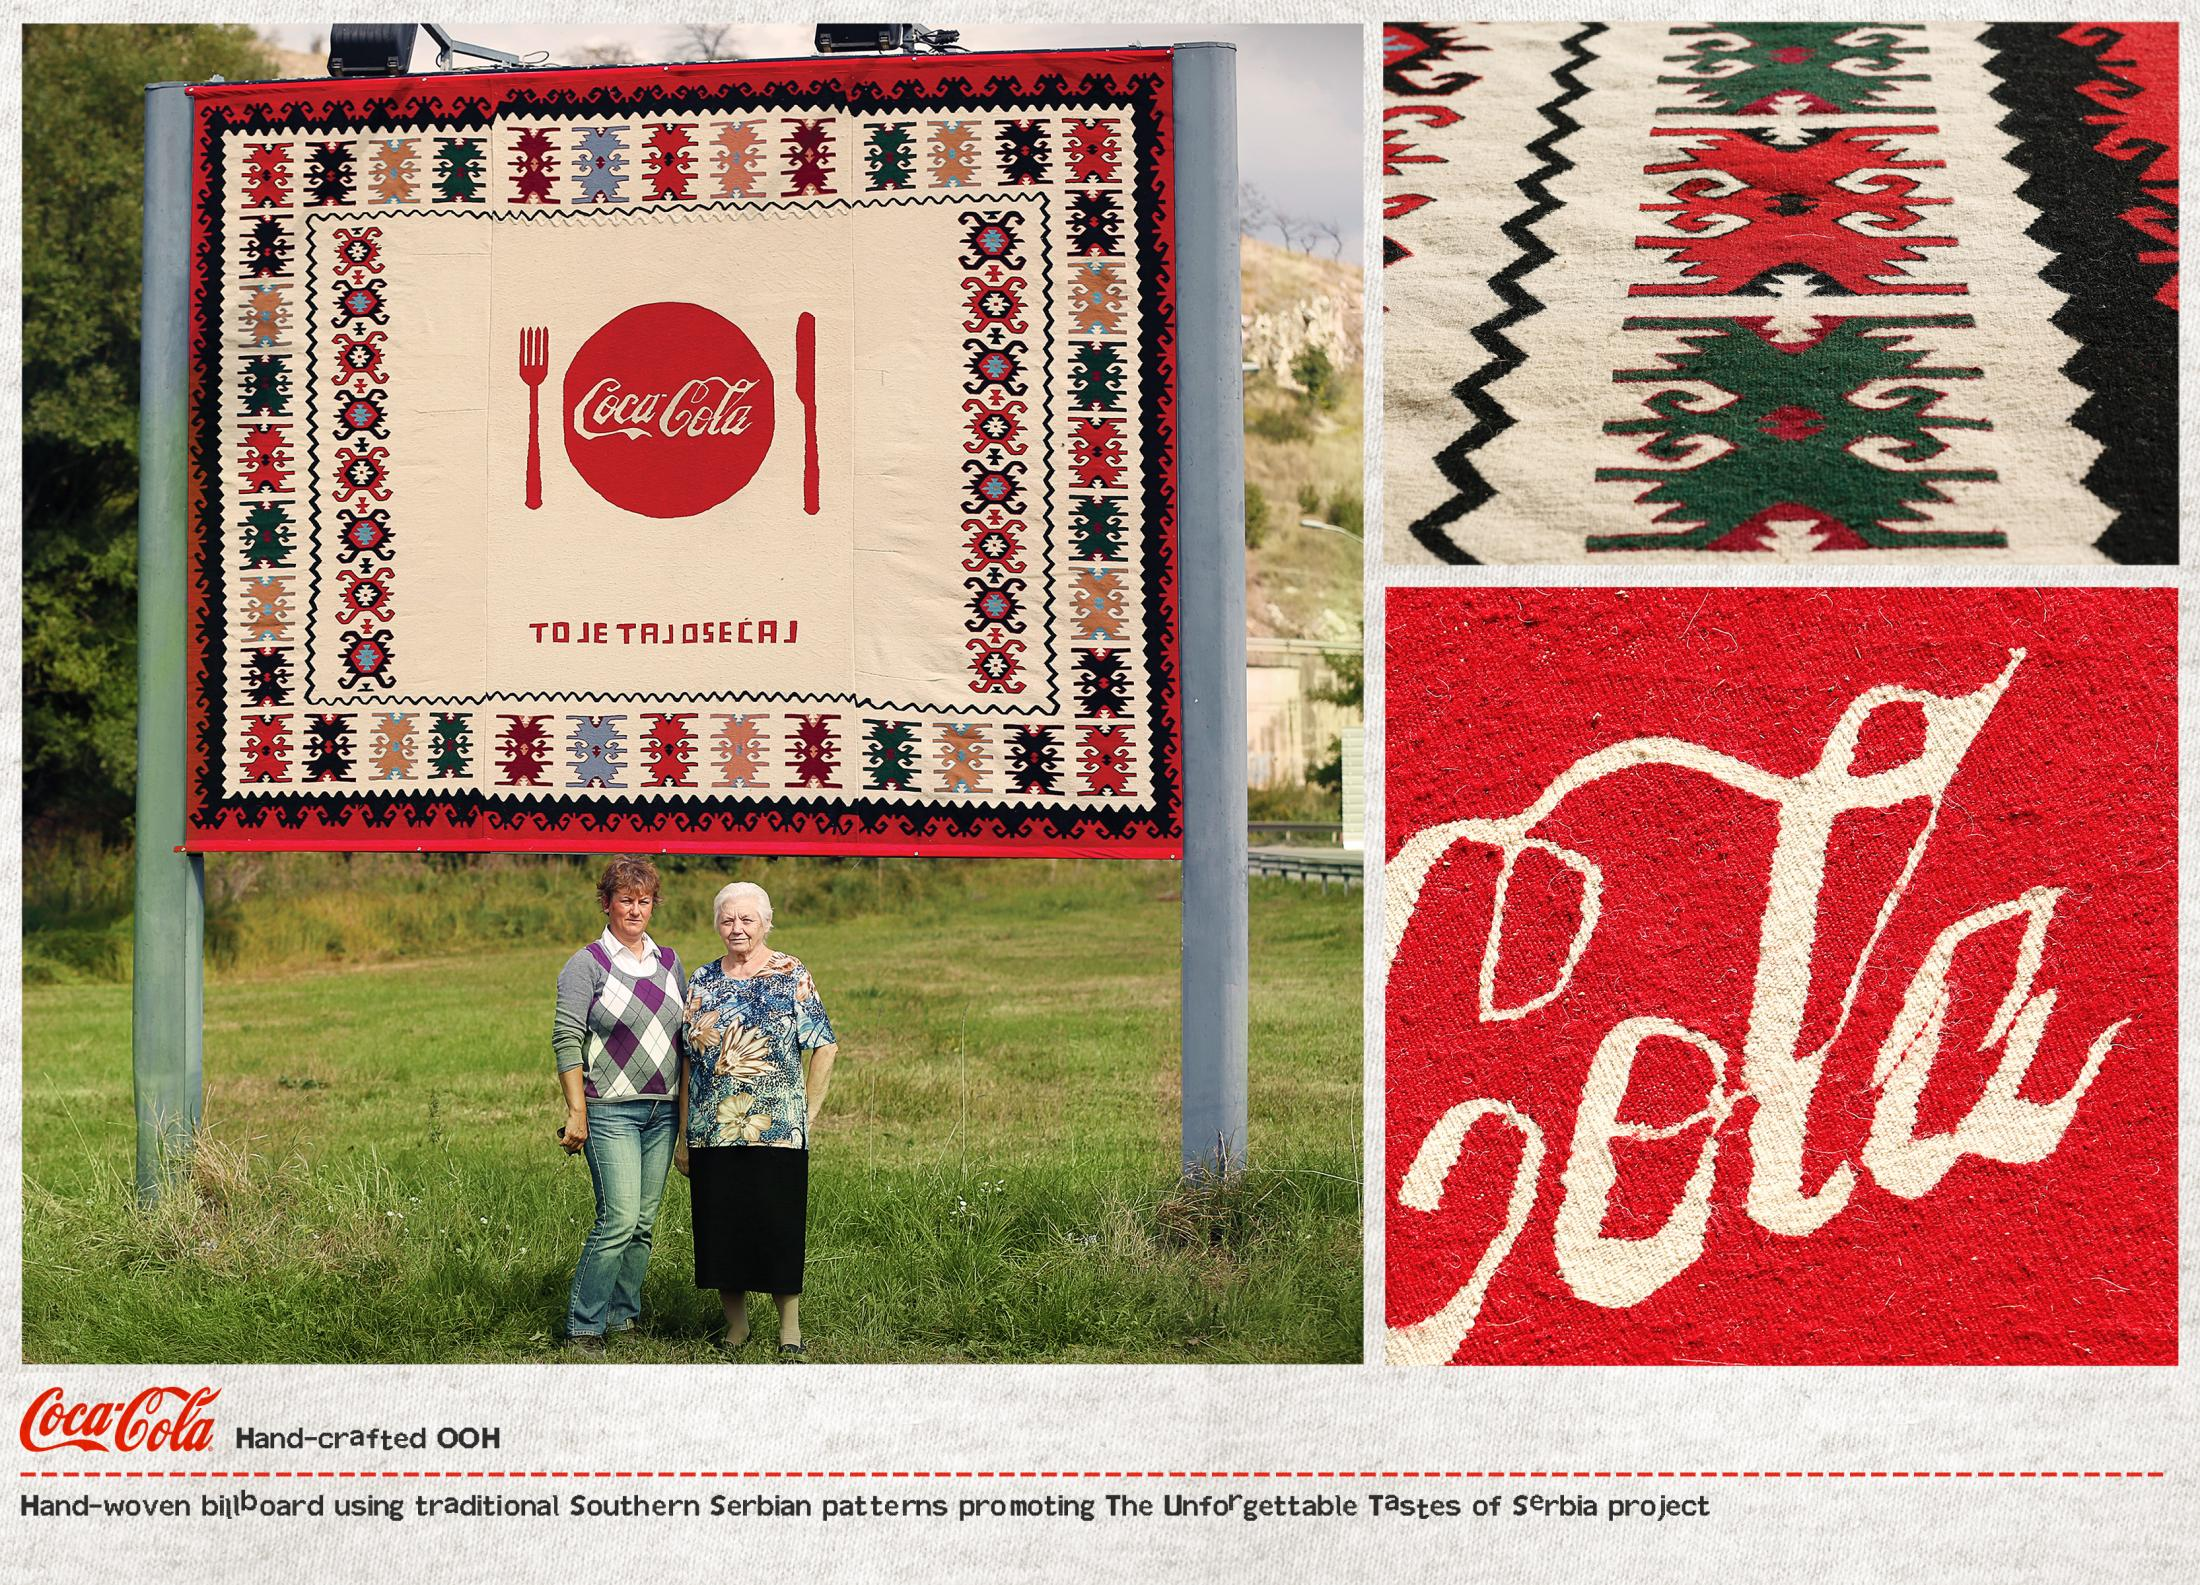 coca-cola_hand-crafted_billboards_3.jpg